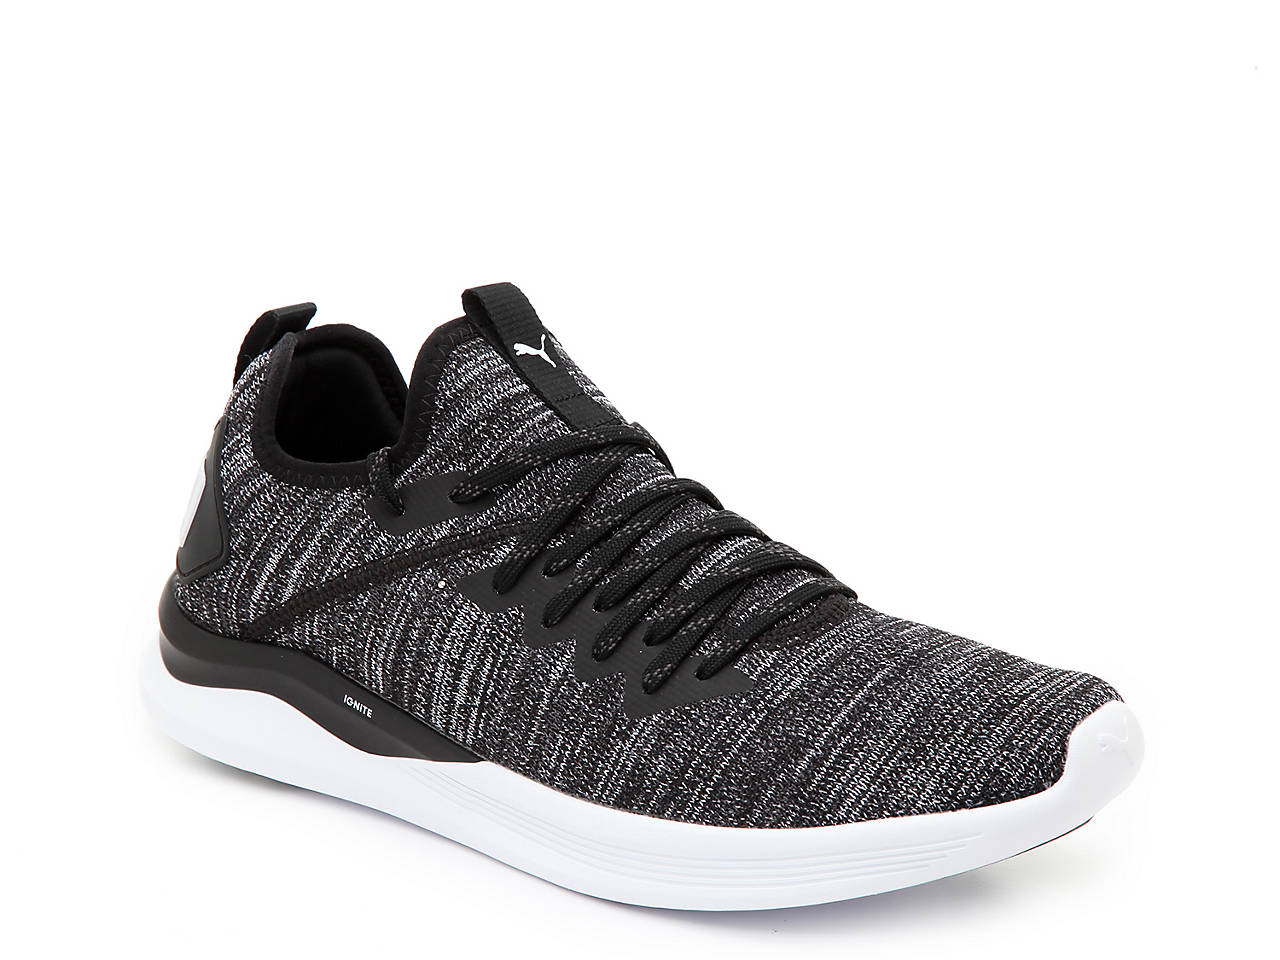 061ff9bdbd99 Puma Ignite Flash evoKNIT Sneaker - Men s Men s Shoes